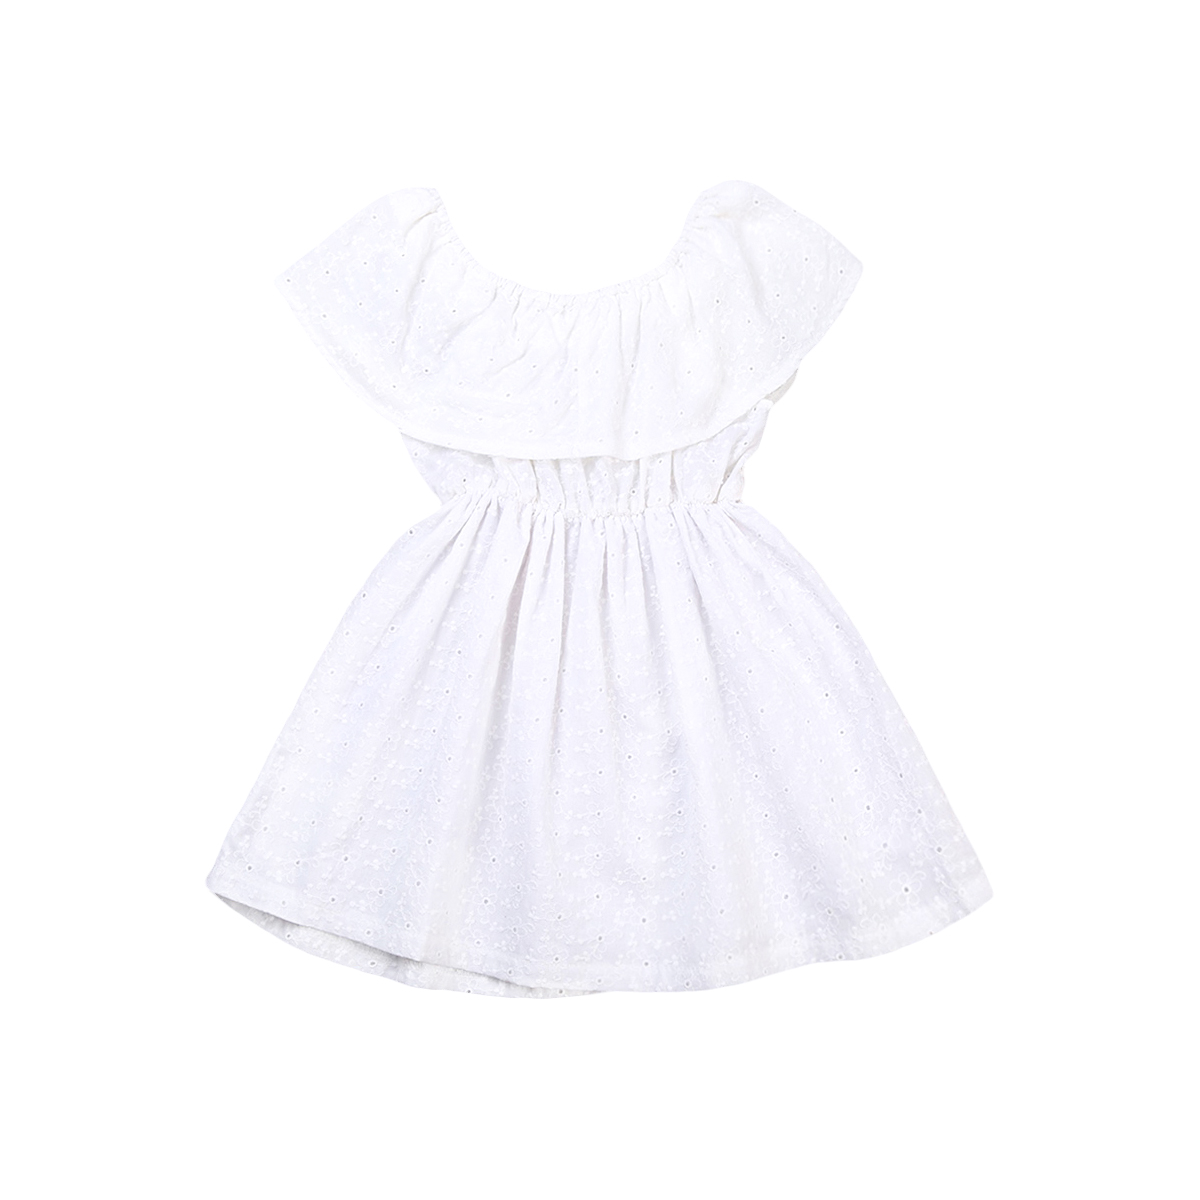 2017 Summer Children Girls White Lace Dress Off Shoulder Ruffled Collar Princess Girl Party Dresses One Pieces Sundress Clothes knife